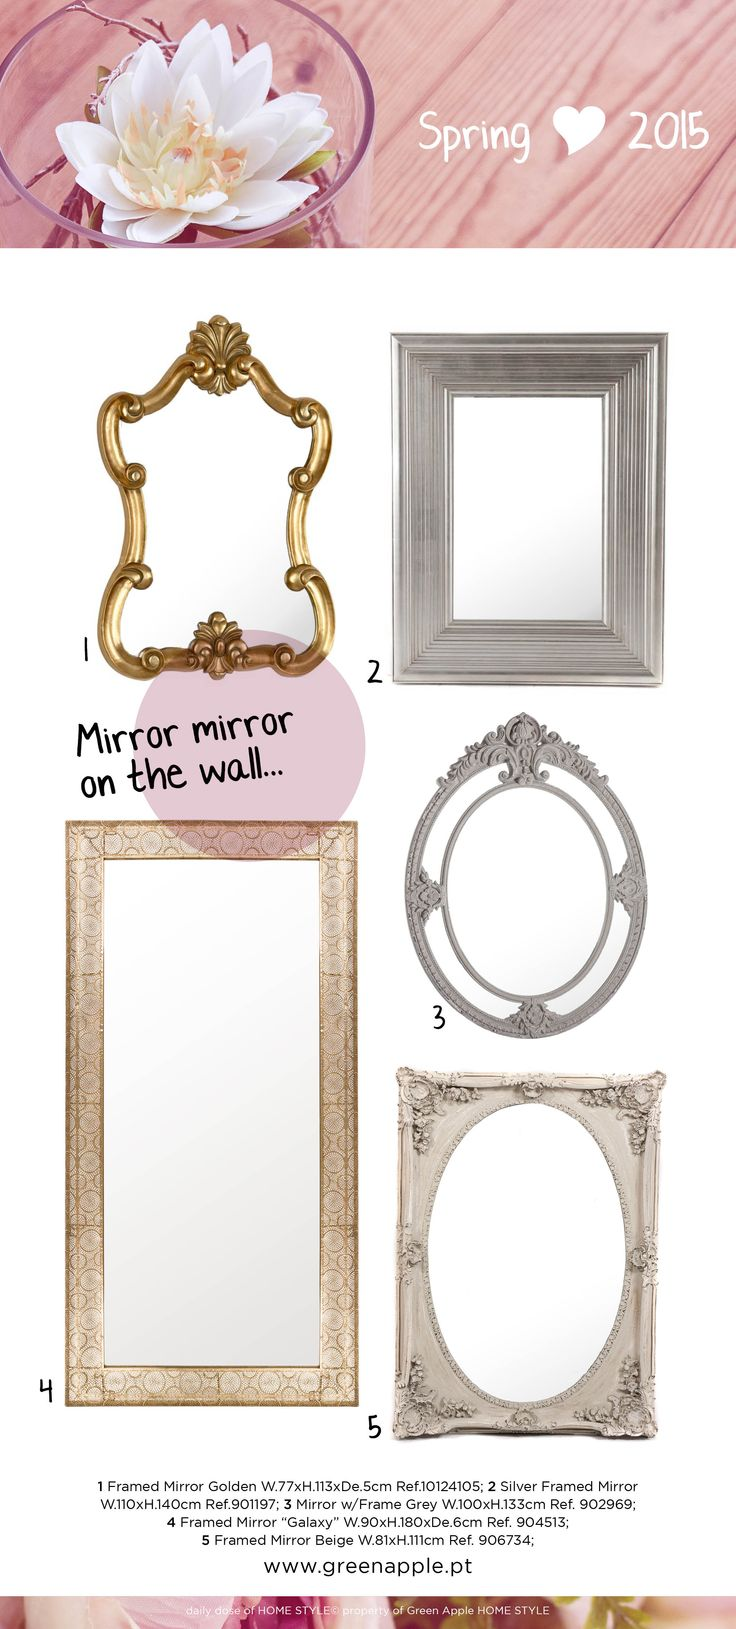 Green Apple HOME STYLE ♥ Spring 2015 #InspiringCollections #InteriorDecoration #Furniture #Portugal #Spring #Mirror #WallArt